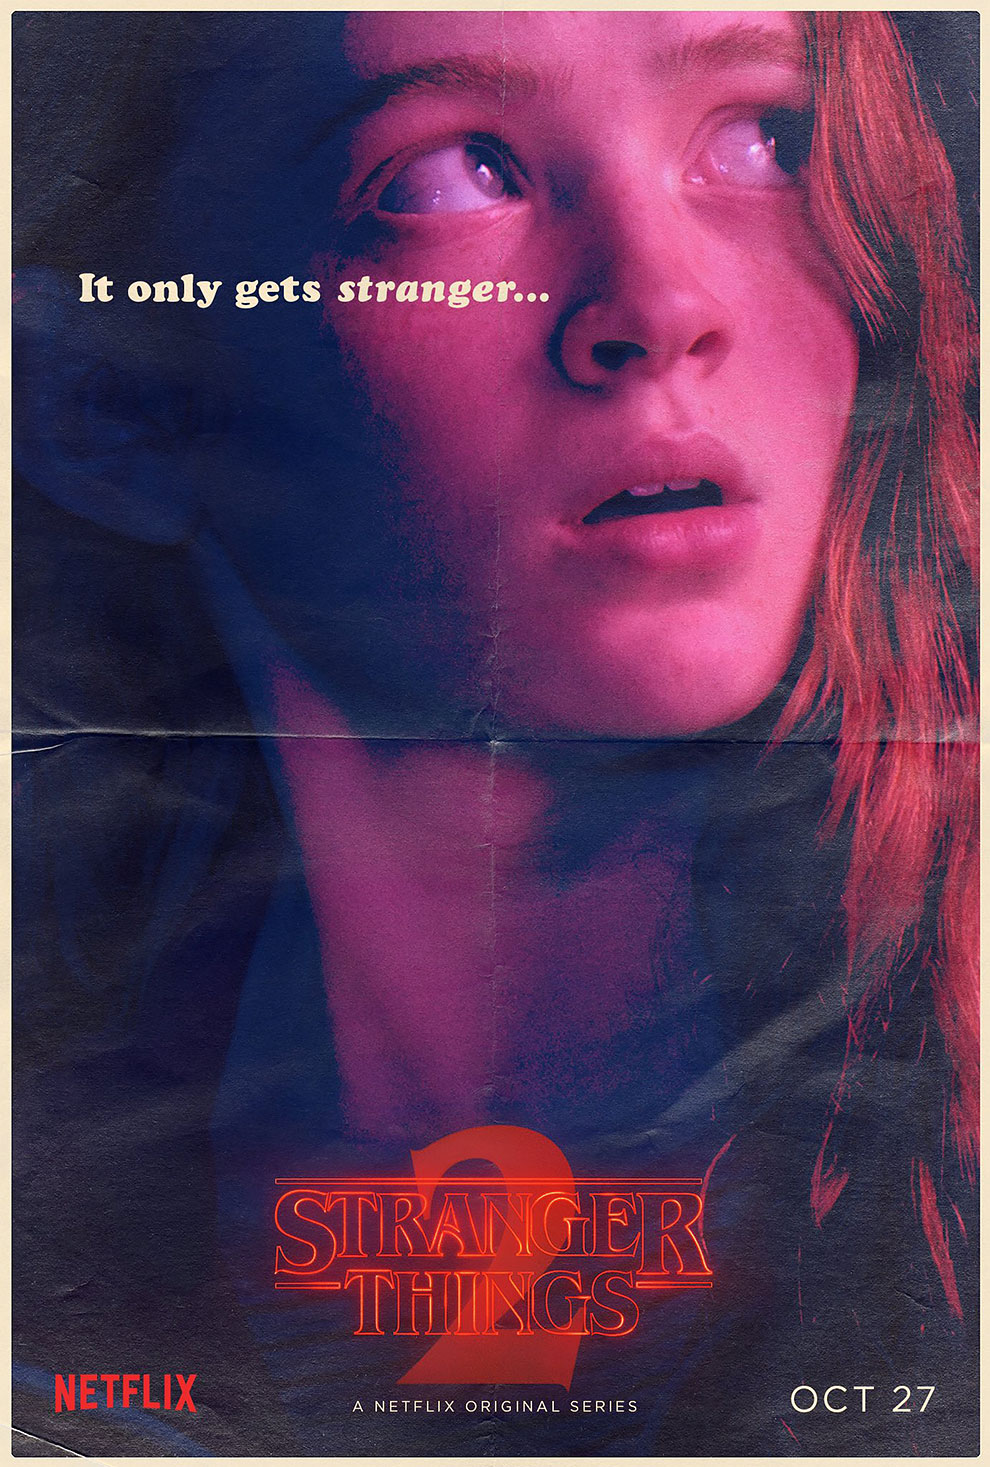 Stranger Things 2 Amazing New Posters